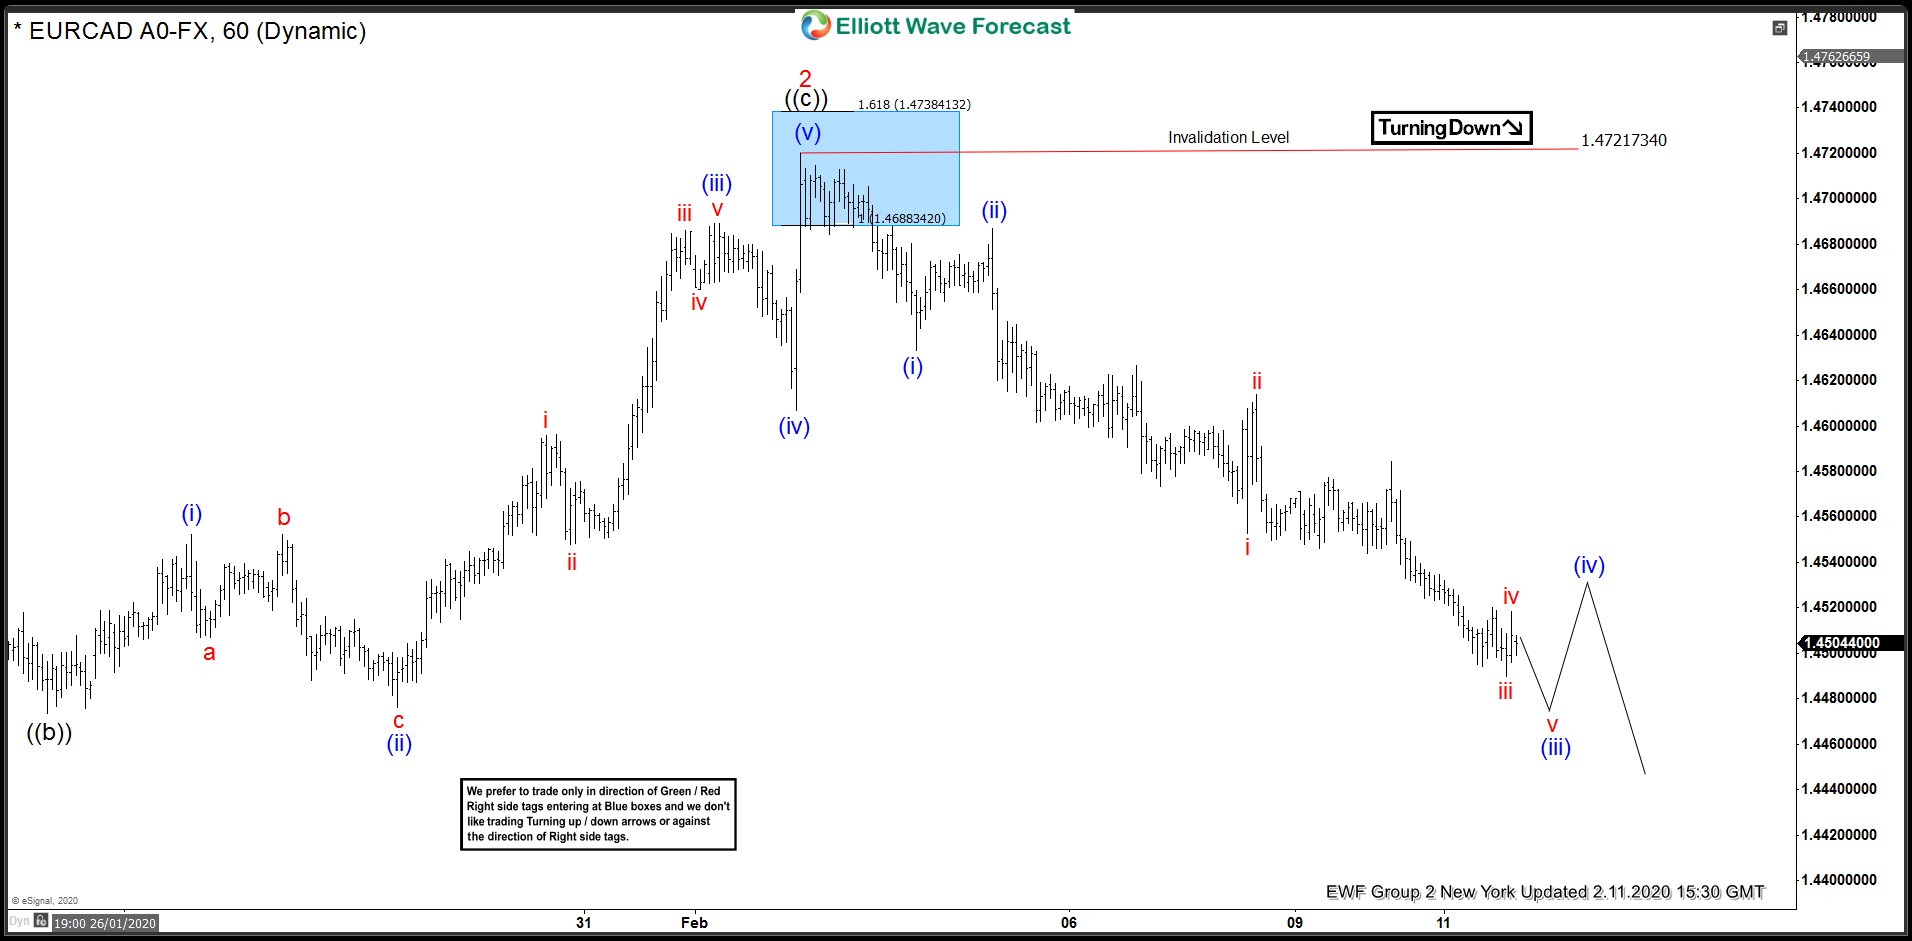 EURCAD 2.11.20 1 hour NY update